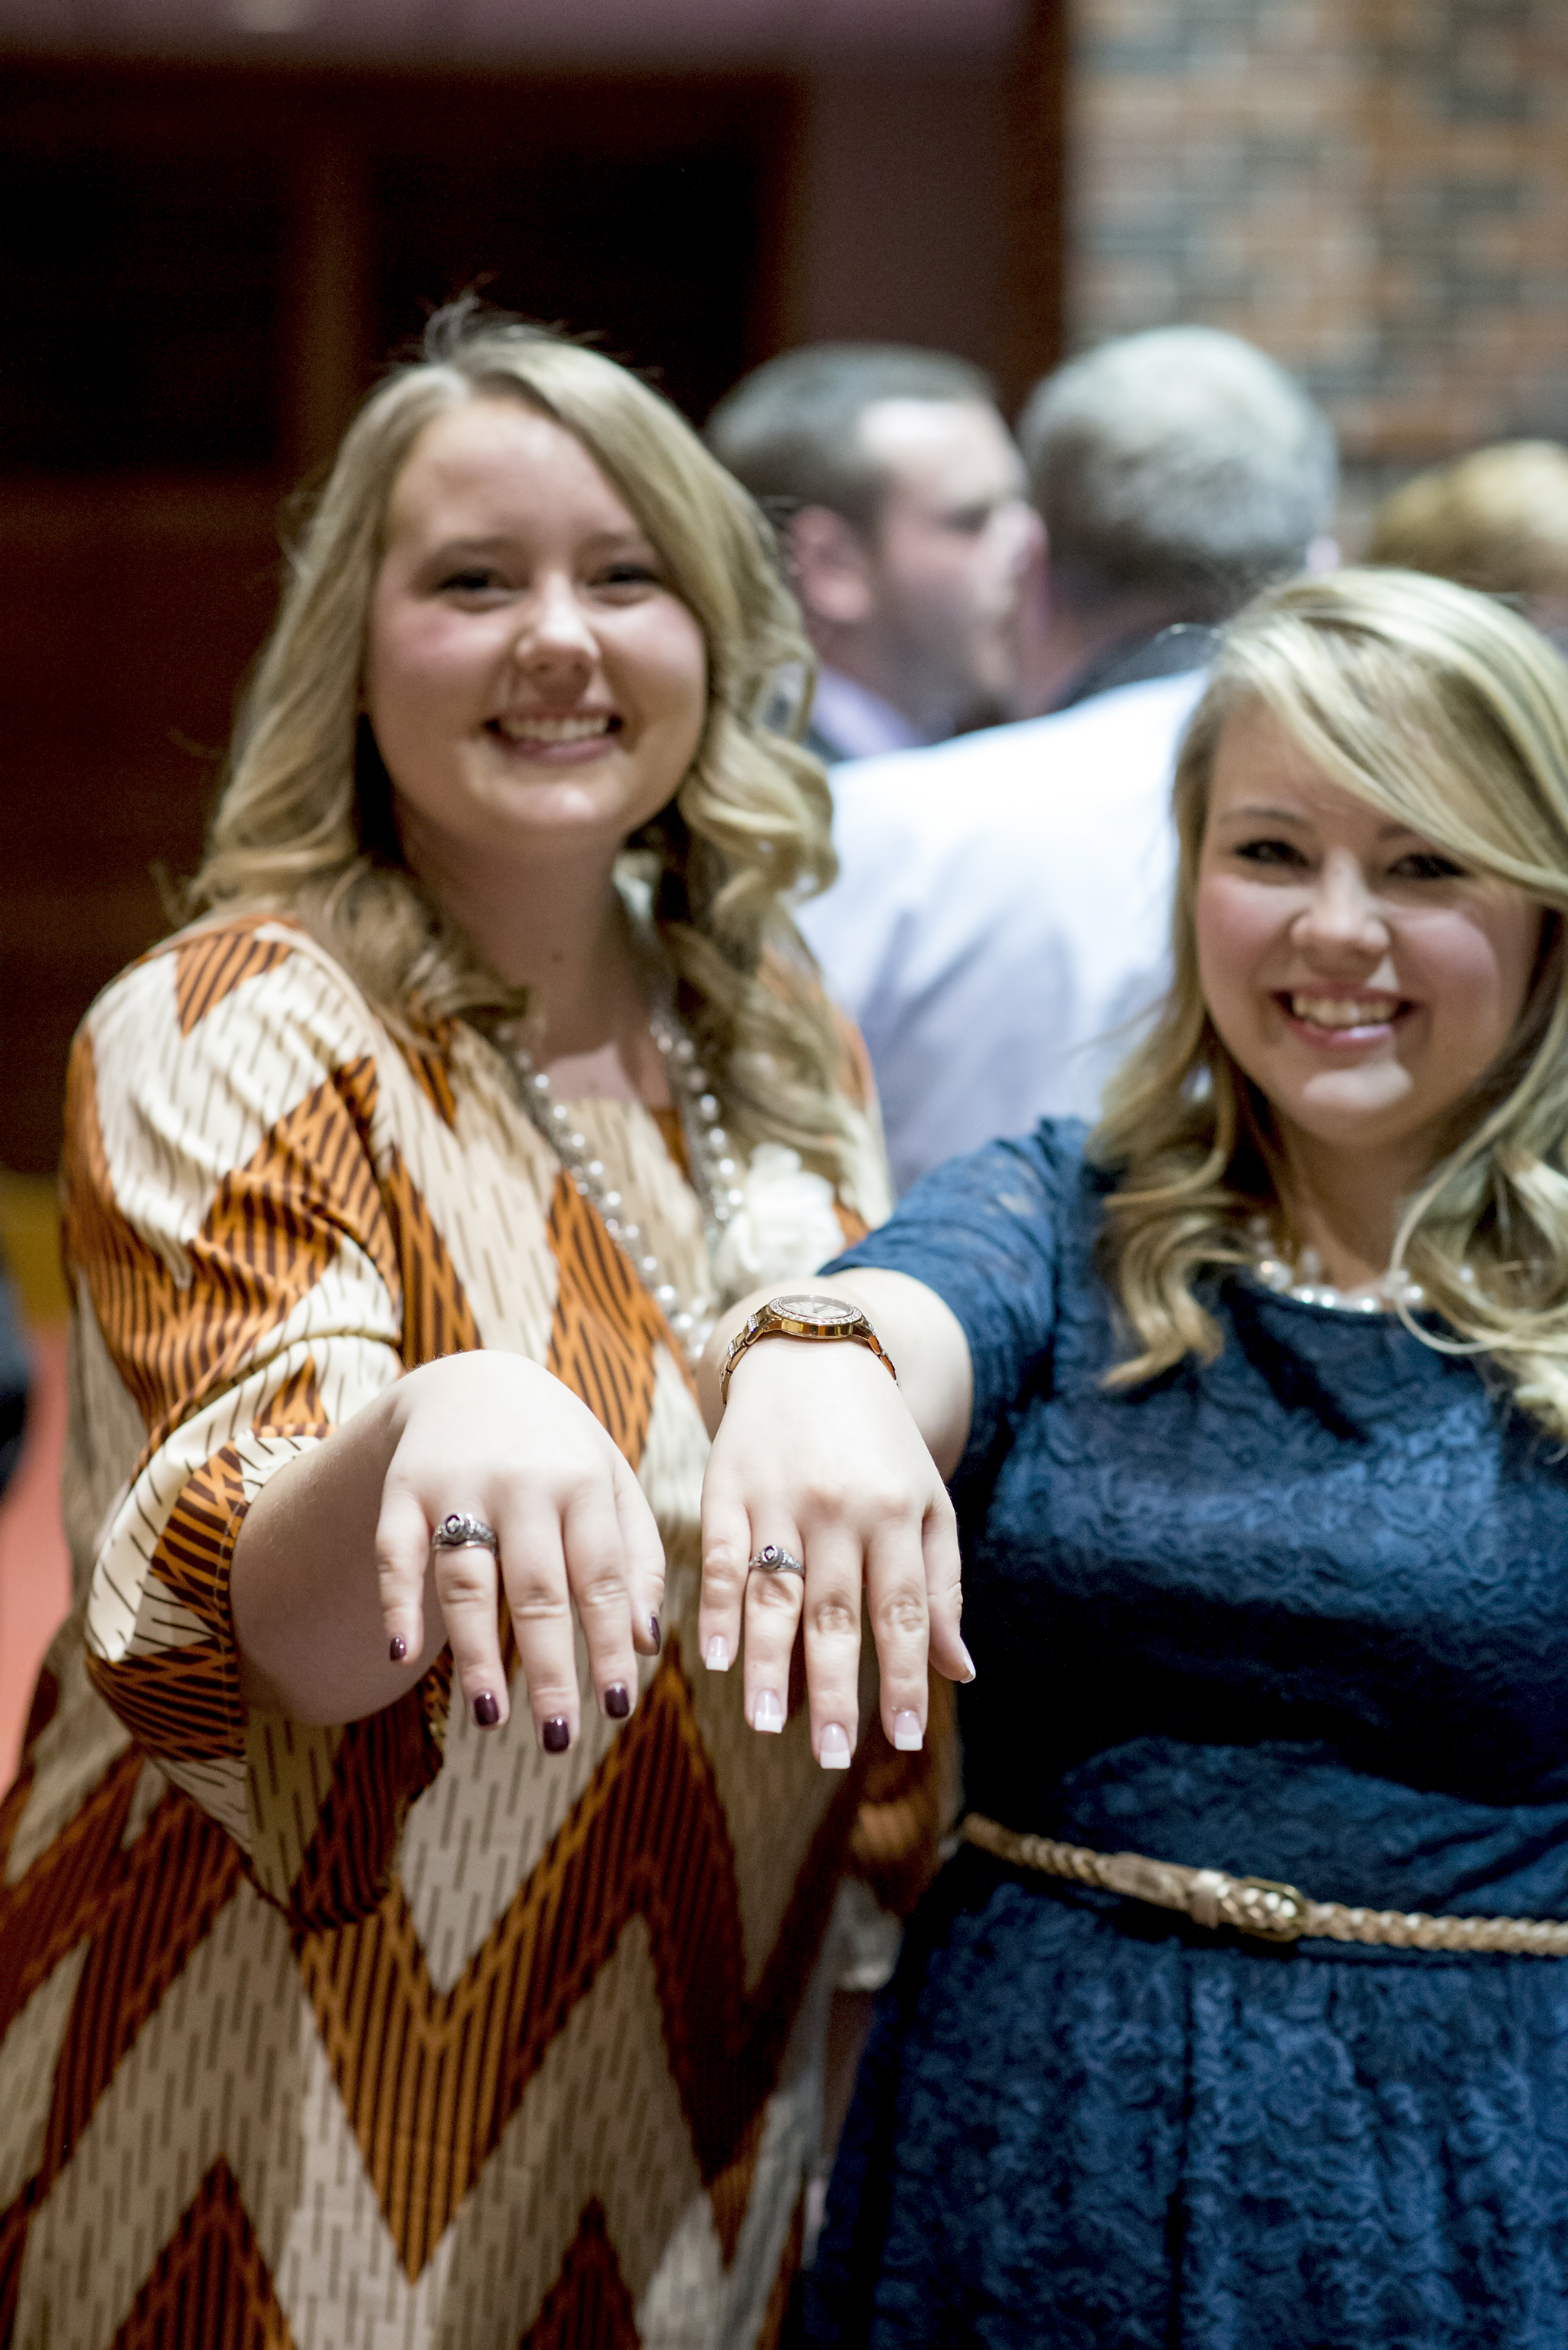 ring ceremony, college ring ceremony